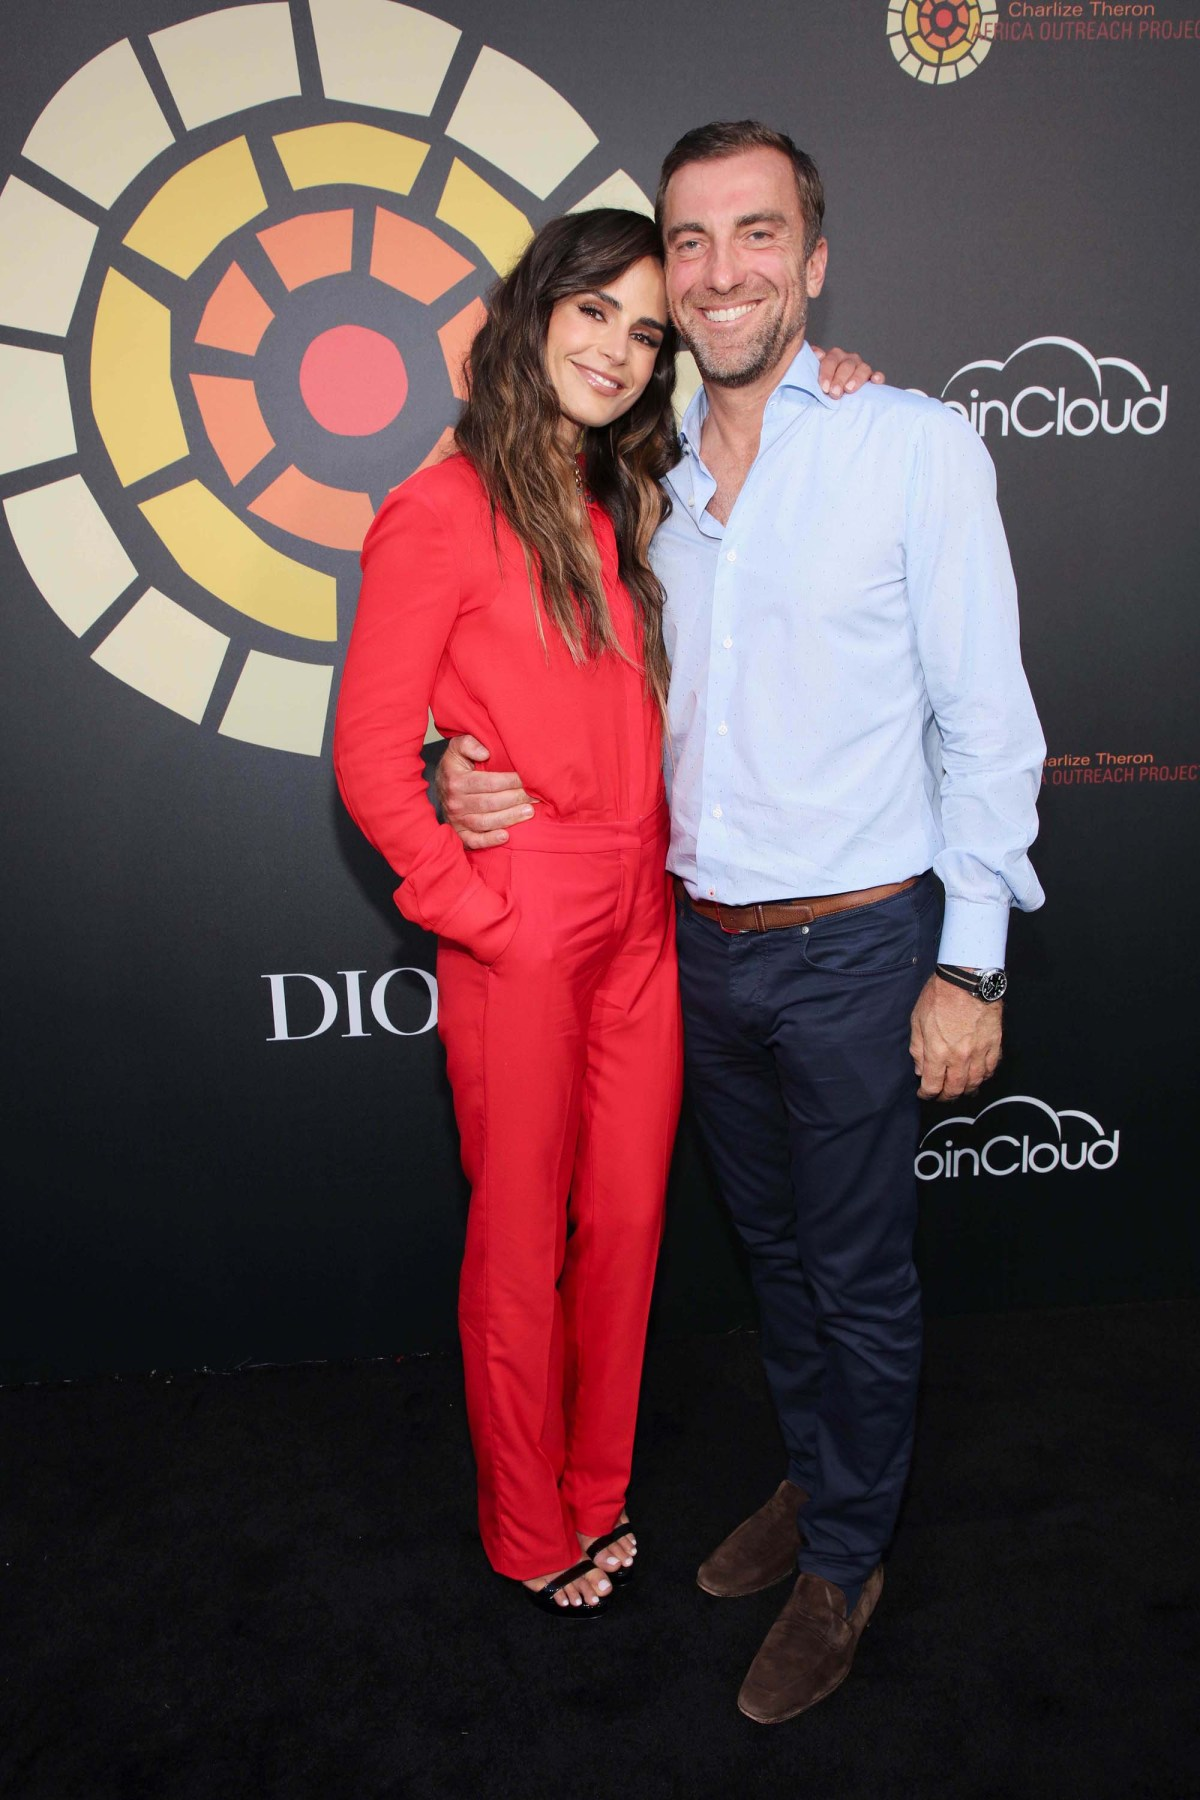 Actress Jordana Brewster Is Engaged To Tech CEO Mason Morfit